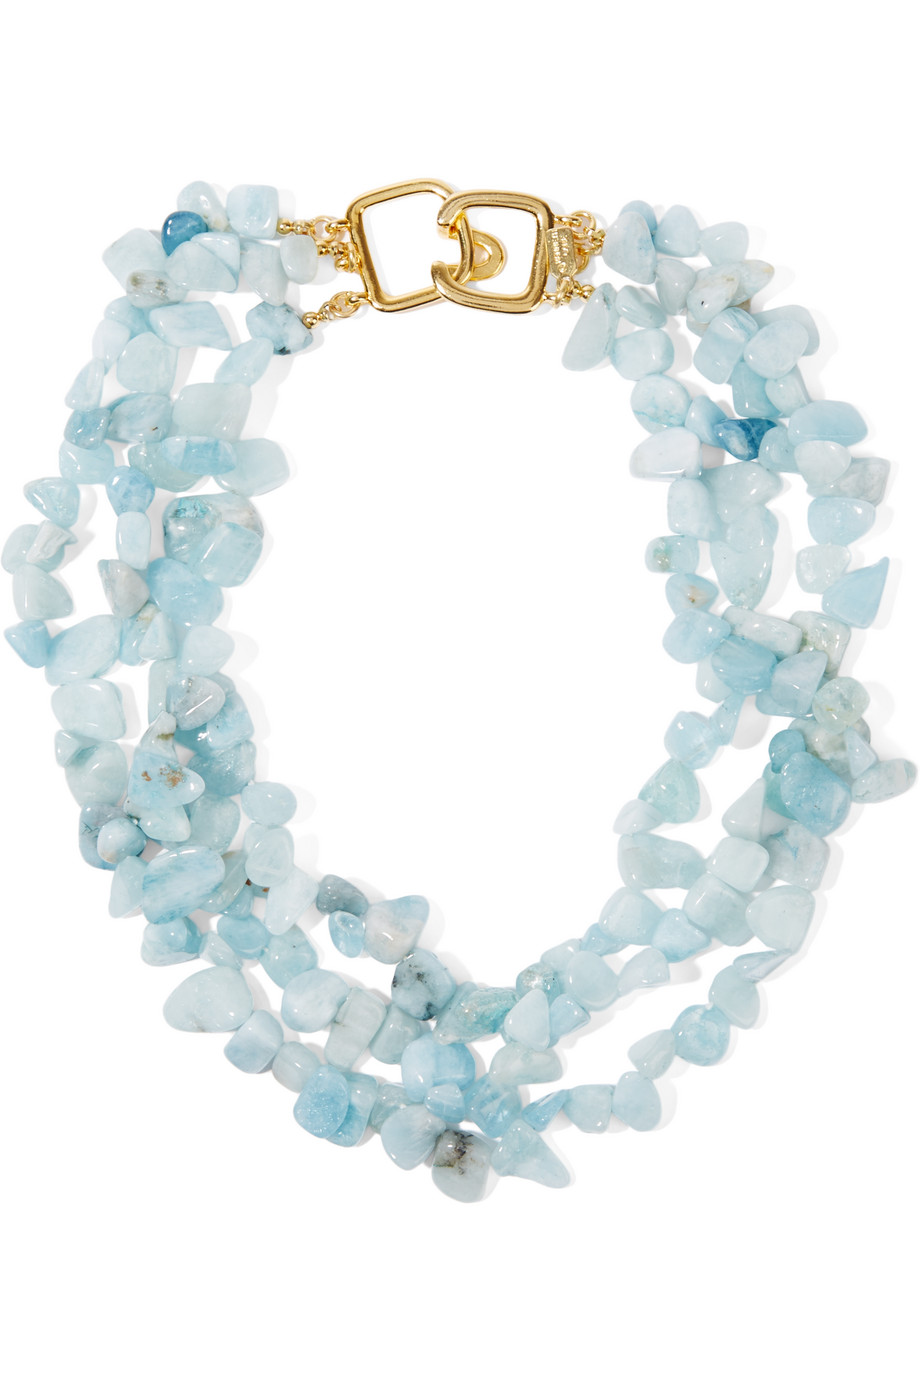 Gold-Plated Beaded Necklace, Kenneth Jay Lane, Sky Blue, Women's